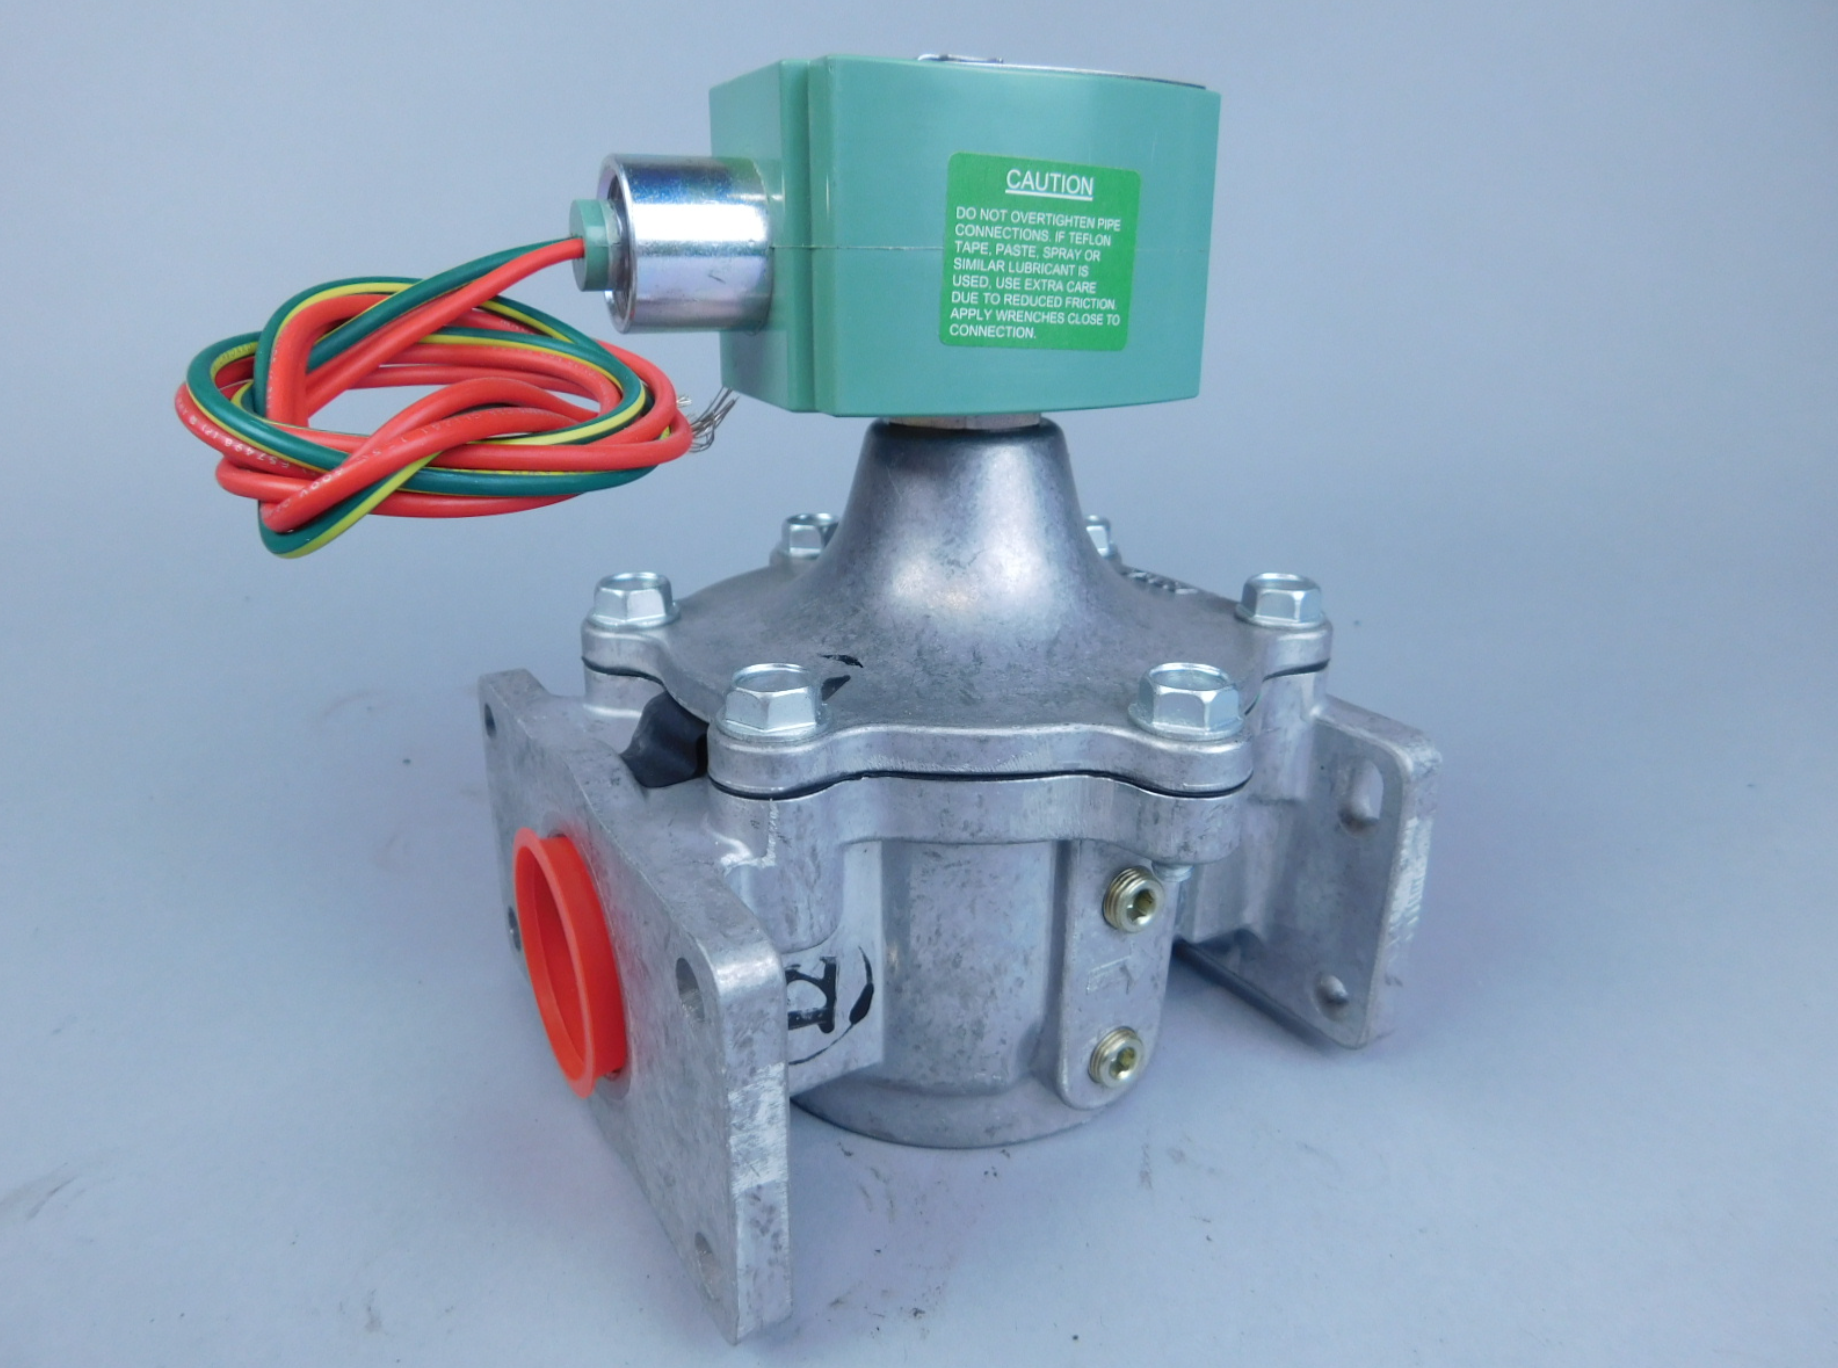 Gas valves - Our valves are the device that regulates, directs or controls the flow of a fluid from your boiler by opening, closing, or partially obstructing various passageways to keep you up and running.We proudly offer these products from:-Honeywell-ITT-Robertshaw-Asco